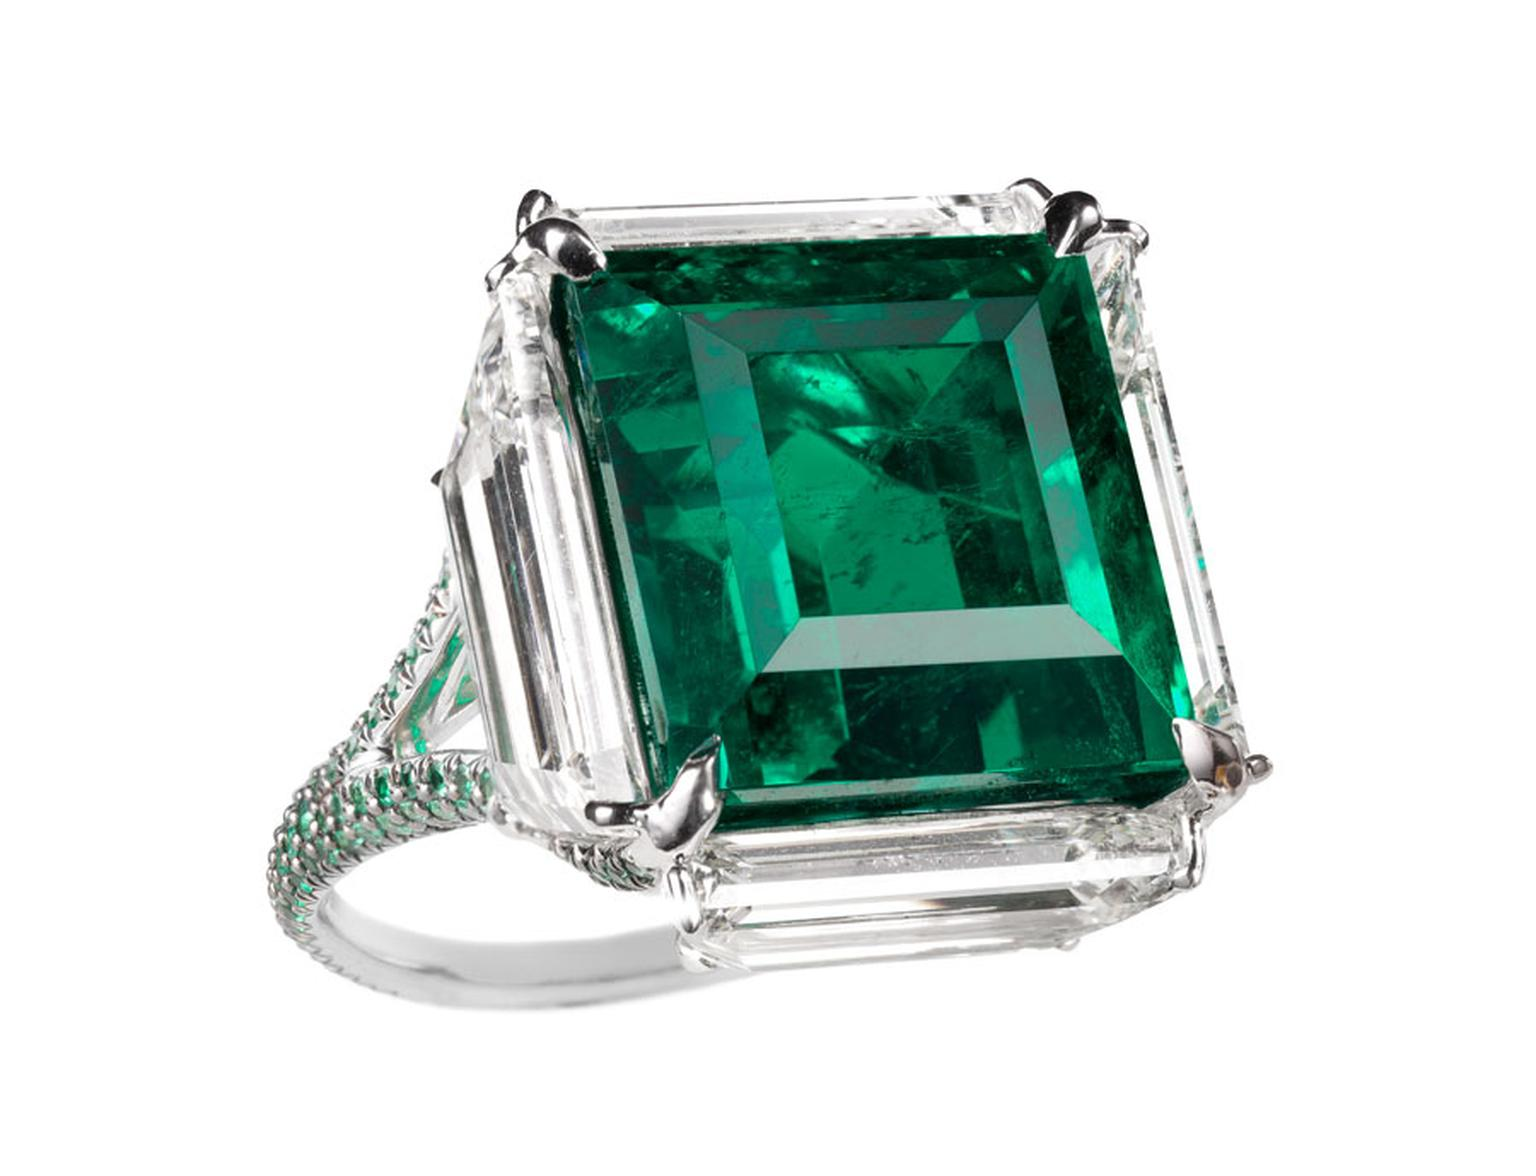 MPL-2013-BOGH-ART-Colombian-Emerald-surrounded-by-diamonds.jpg